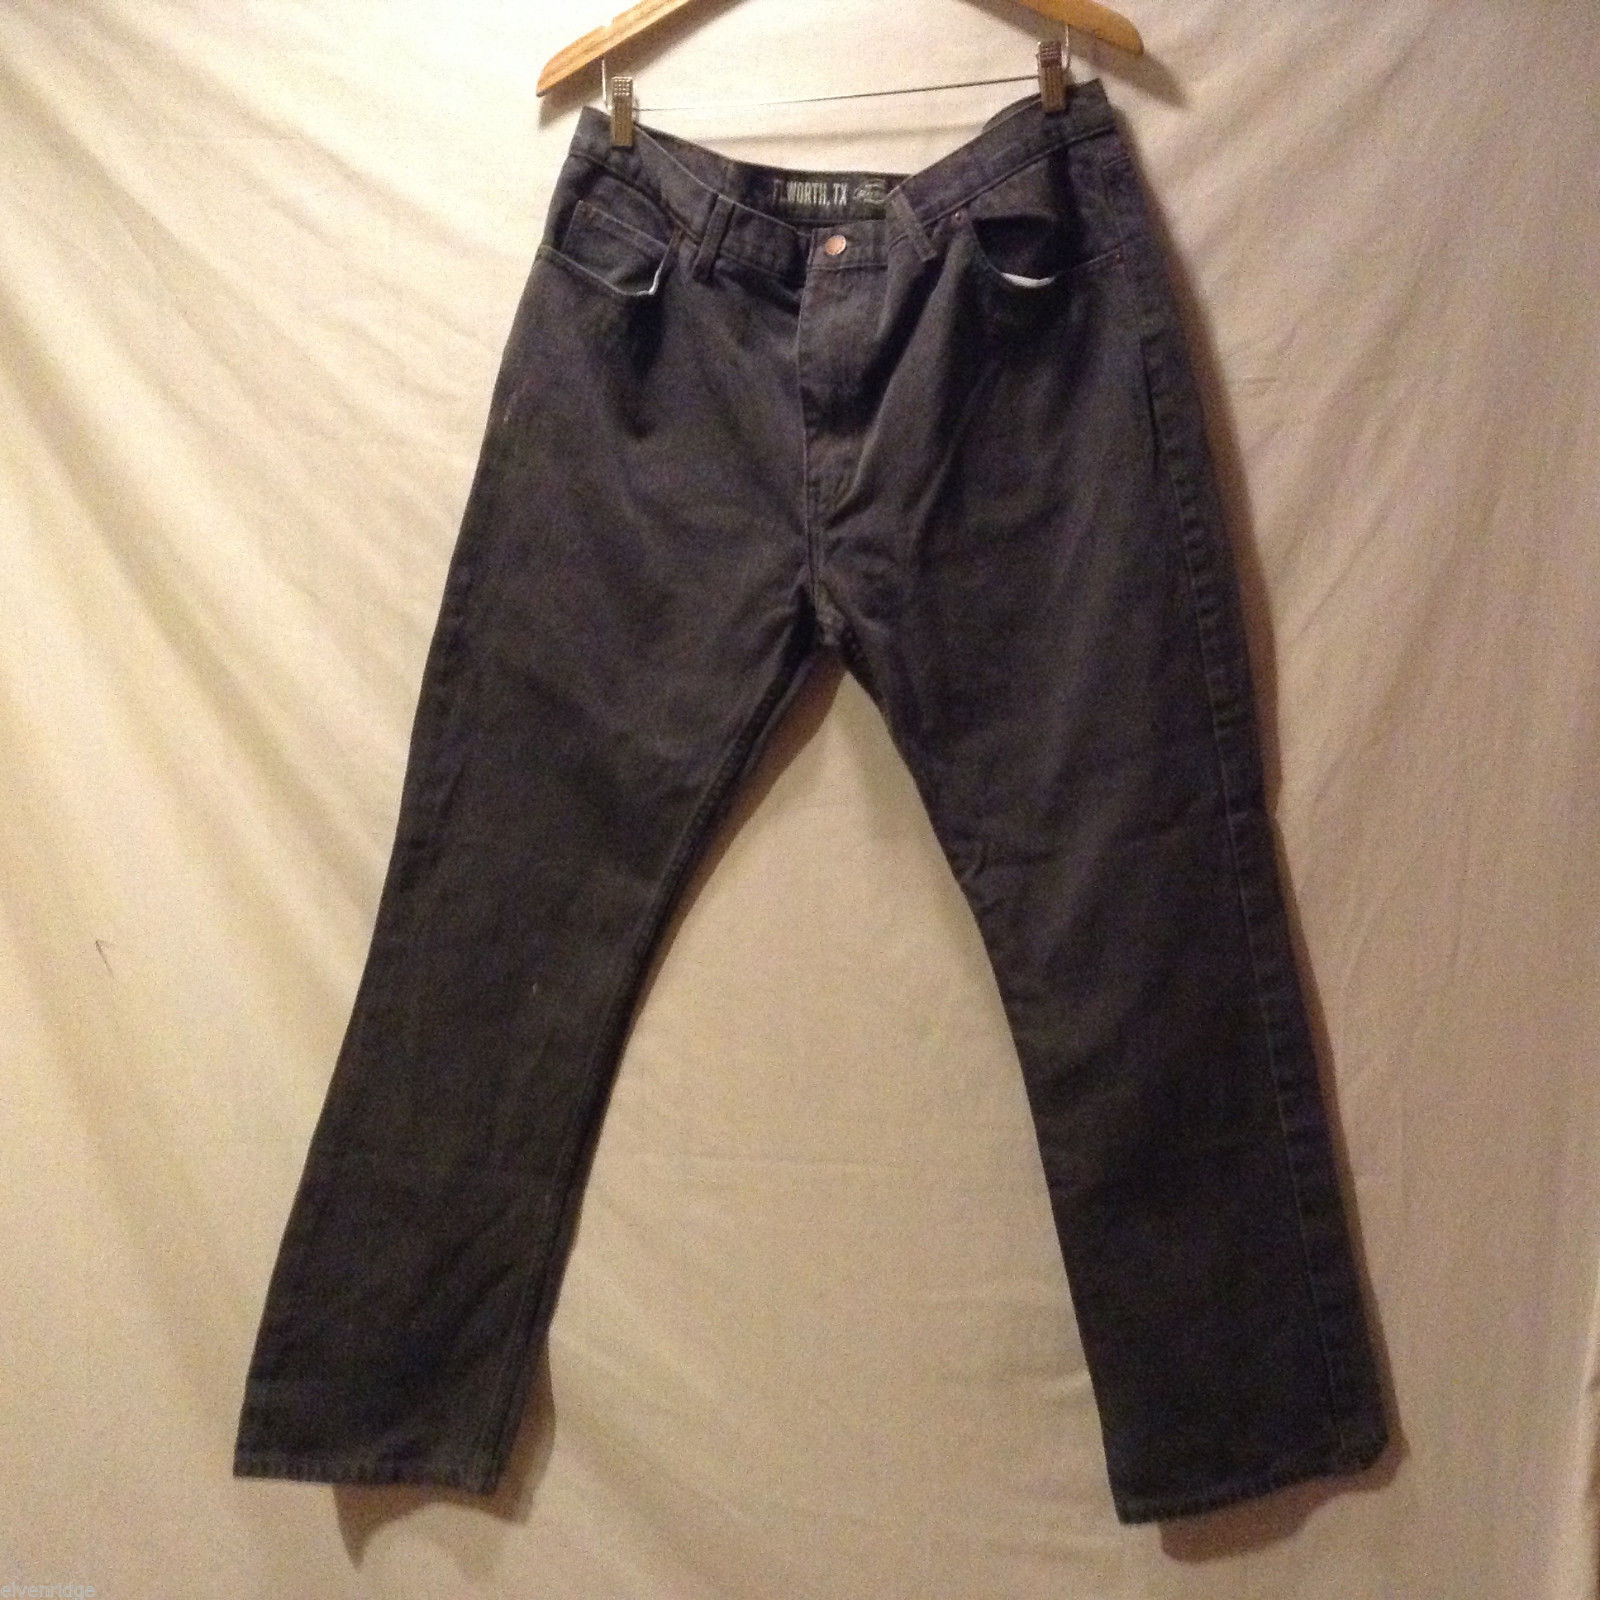 DICKIES FT.Worth, TX Mens 100% cotton Black Jeans Pants, Size 38x32 Slim fit